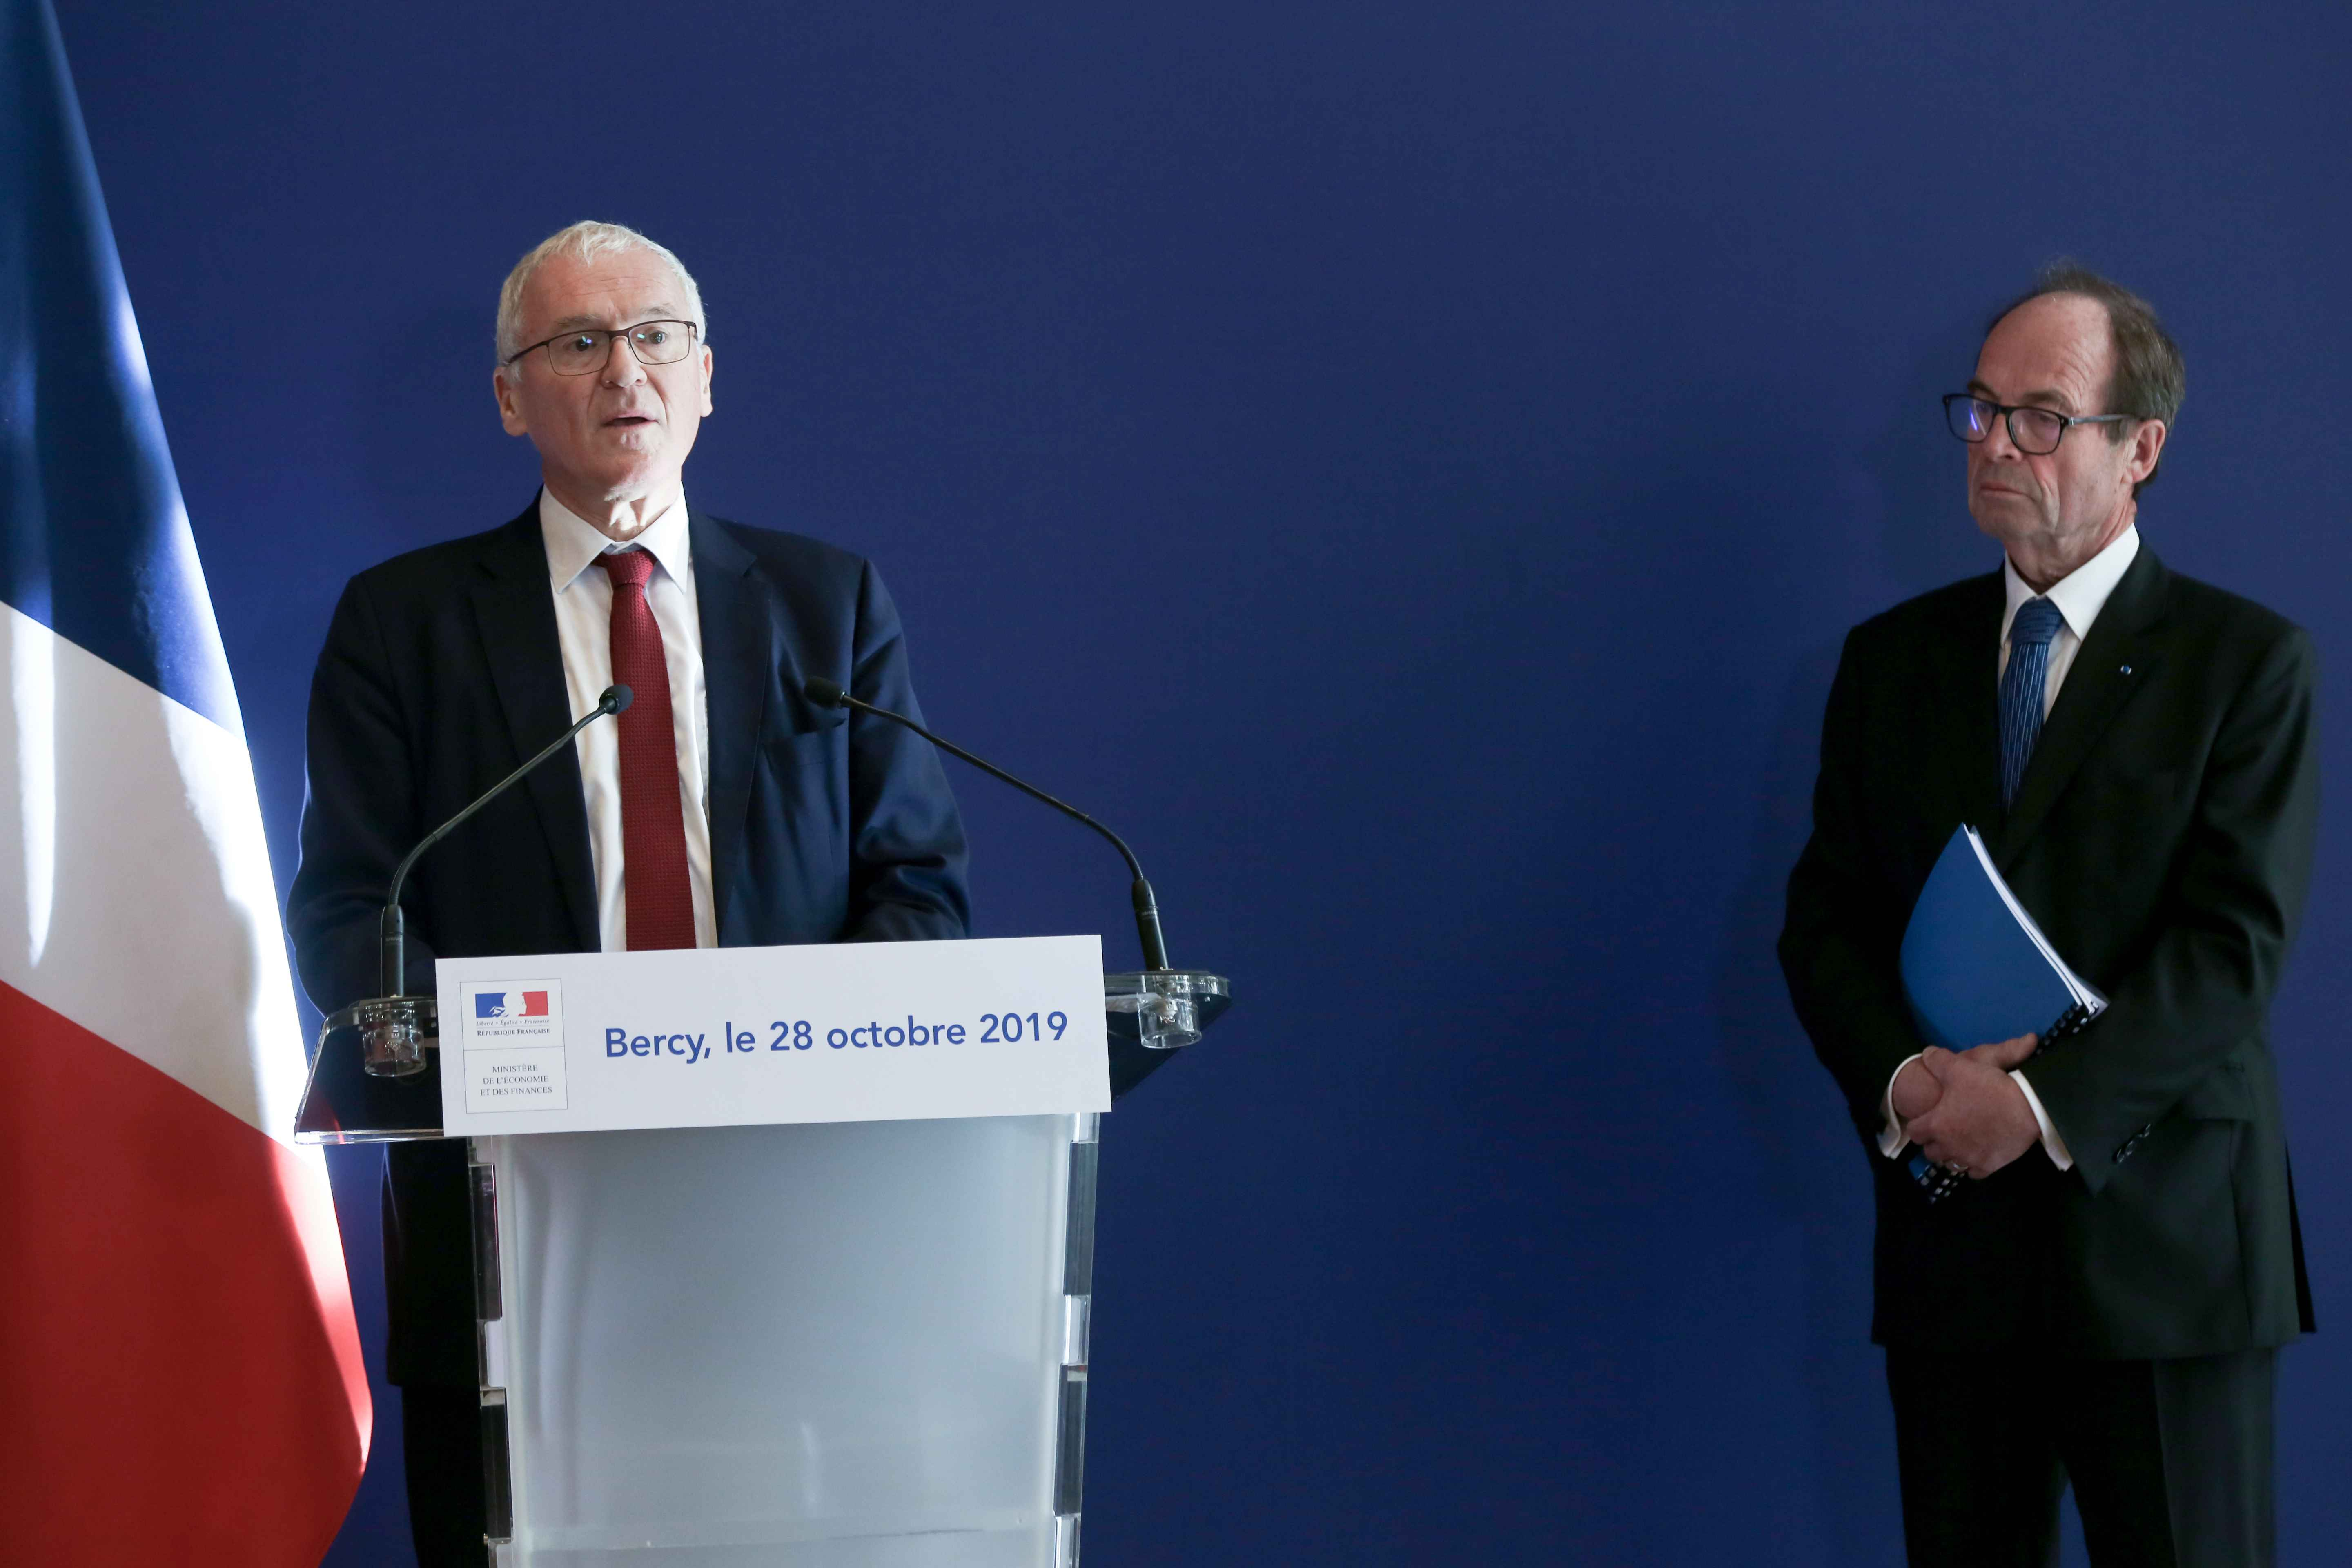 (From L to R) French energy giant EDF's CEO Jean-Bernard Levy and report head Jean-Martin Folz give a press conference to present a report concerning the construction of the EPR at the Flamanville nuclear plant, at the ministry of Economy, in Paris, on Oct